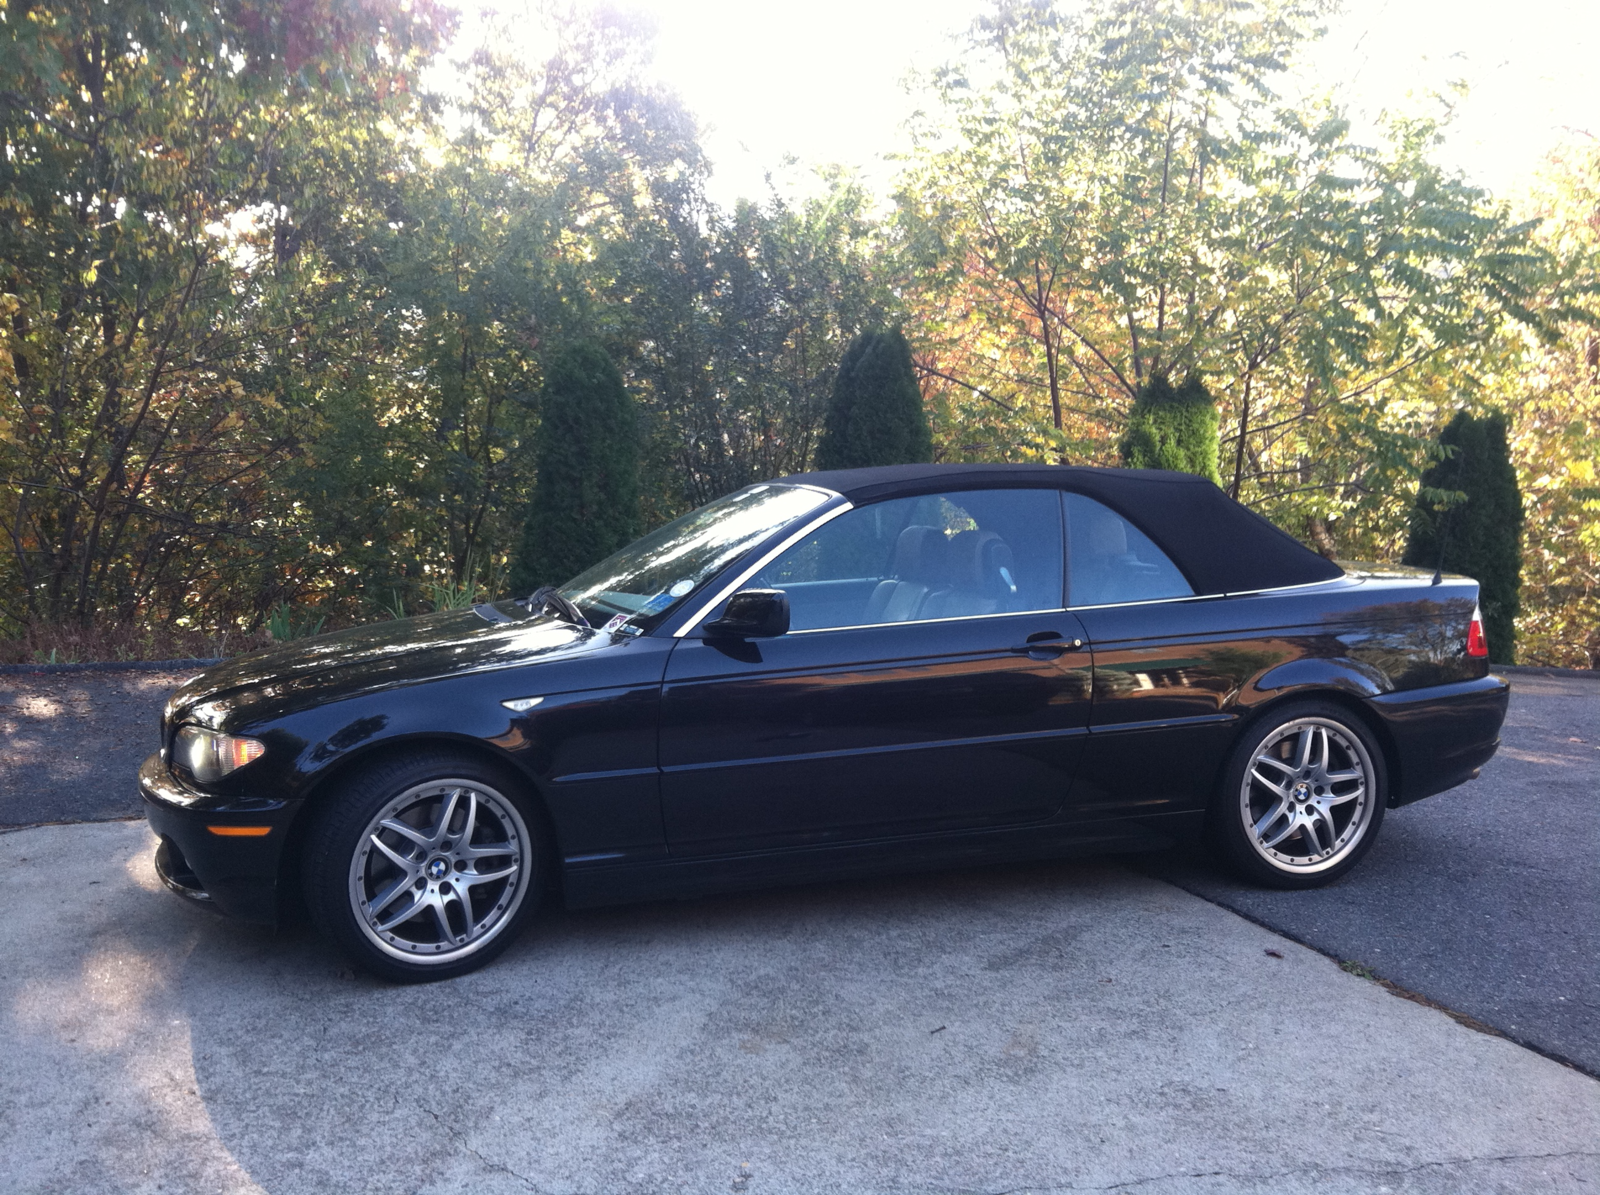 BMW 3 series 330Ci 2004 photo - 7